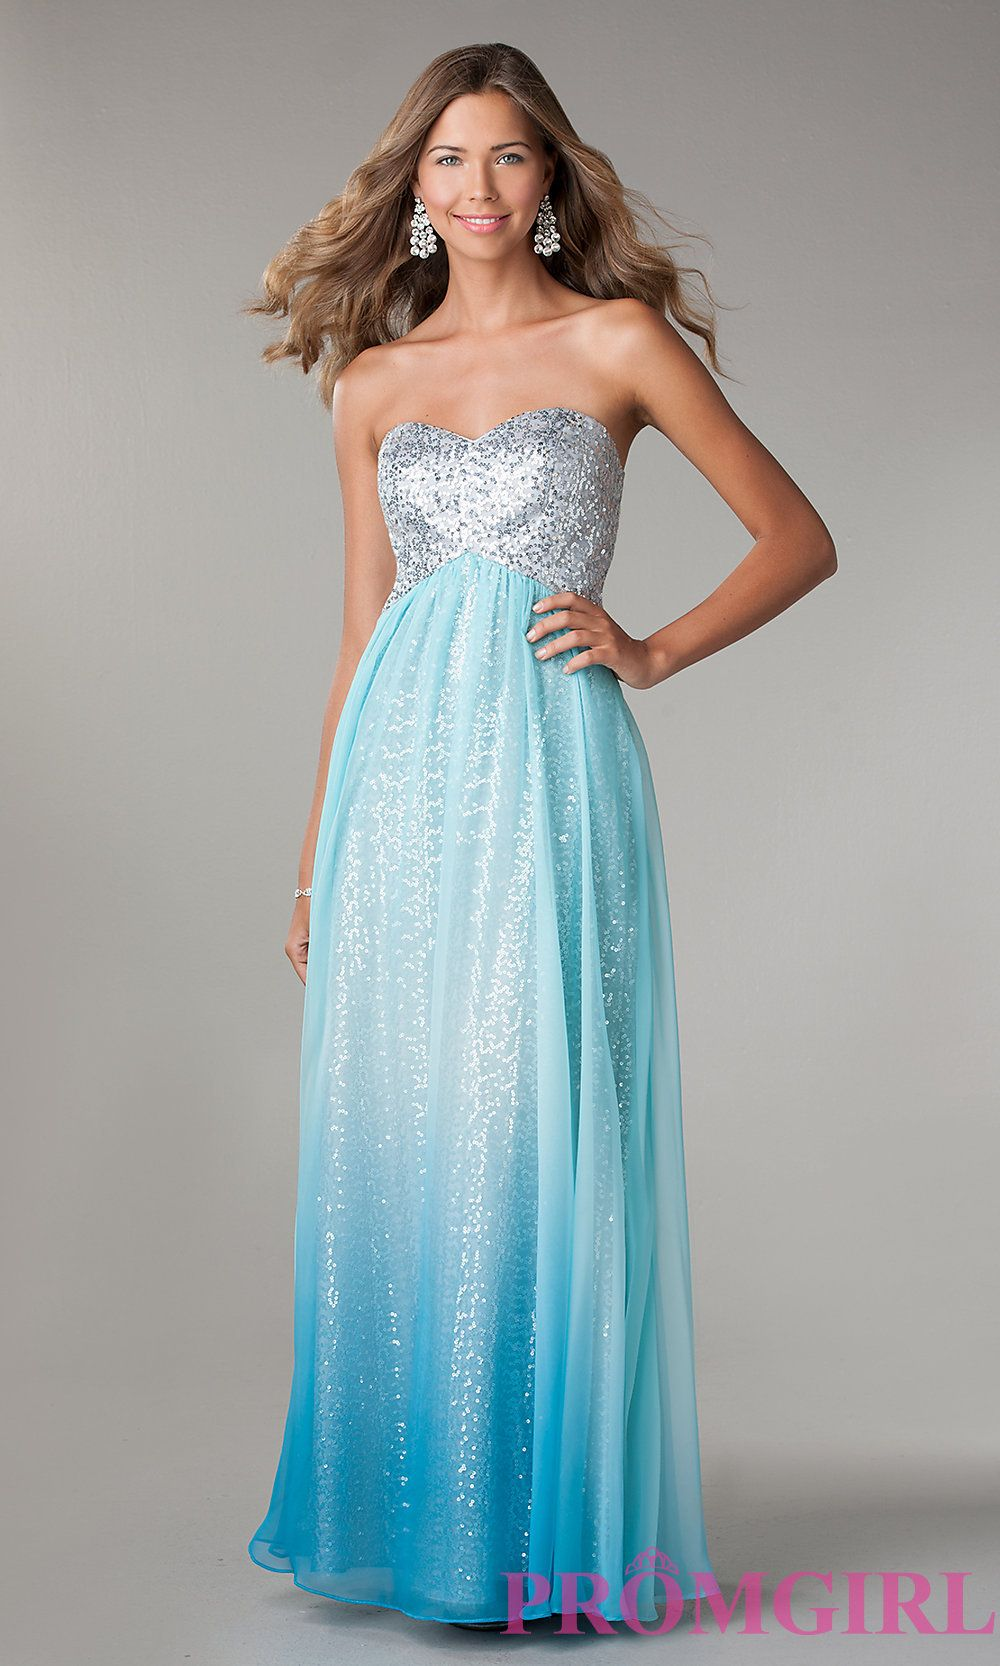 Jump Ombre Strapless Sequin Prom Dress- PromGirl http://www.promgirl ...